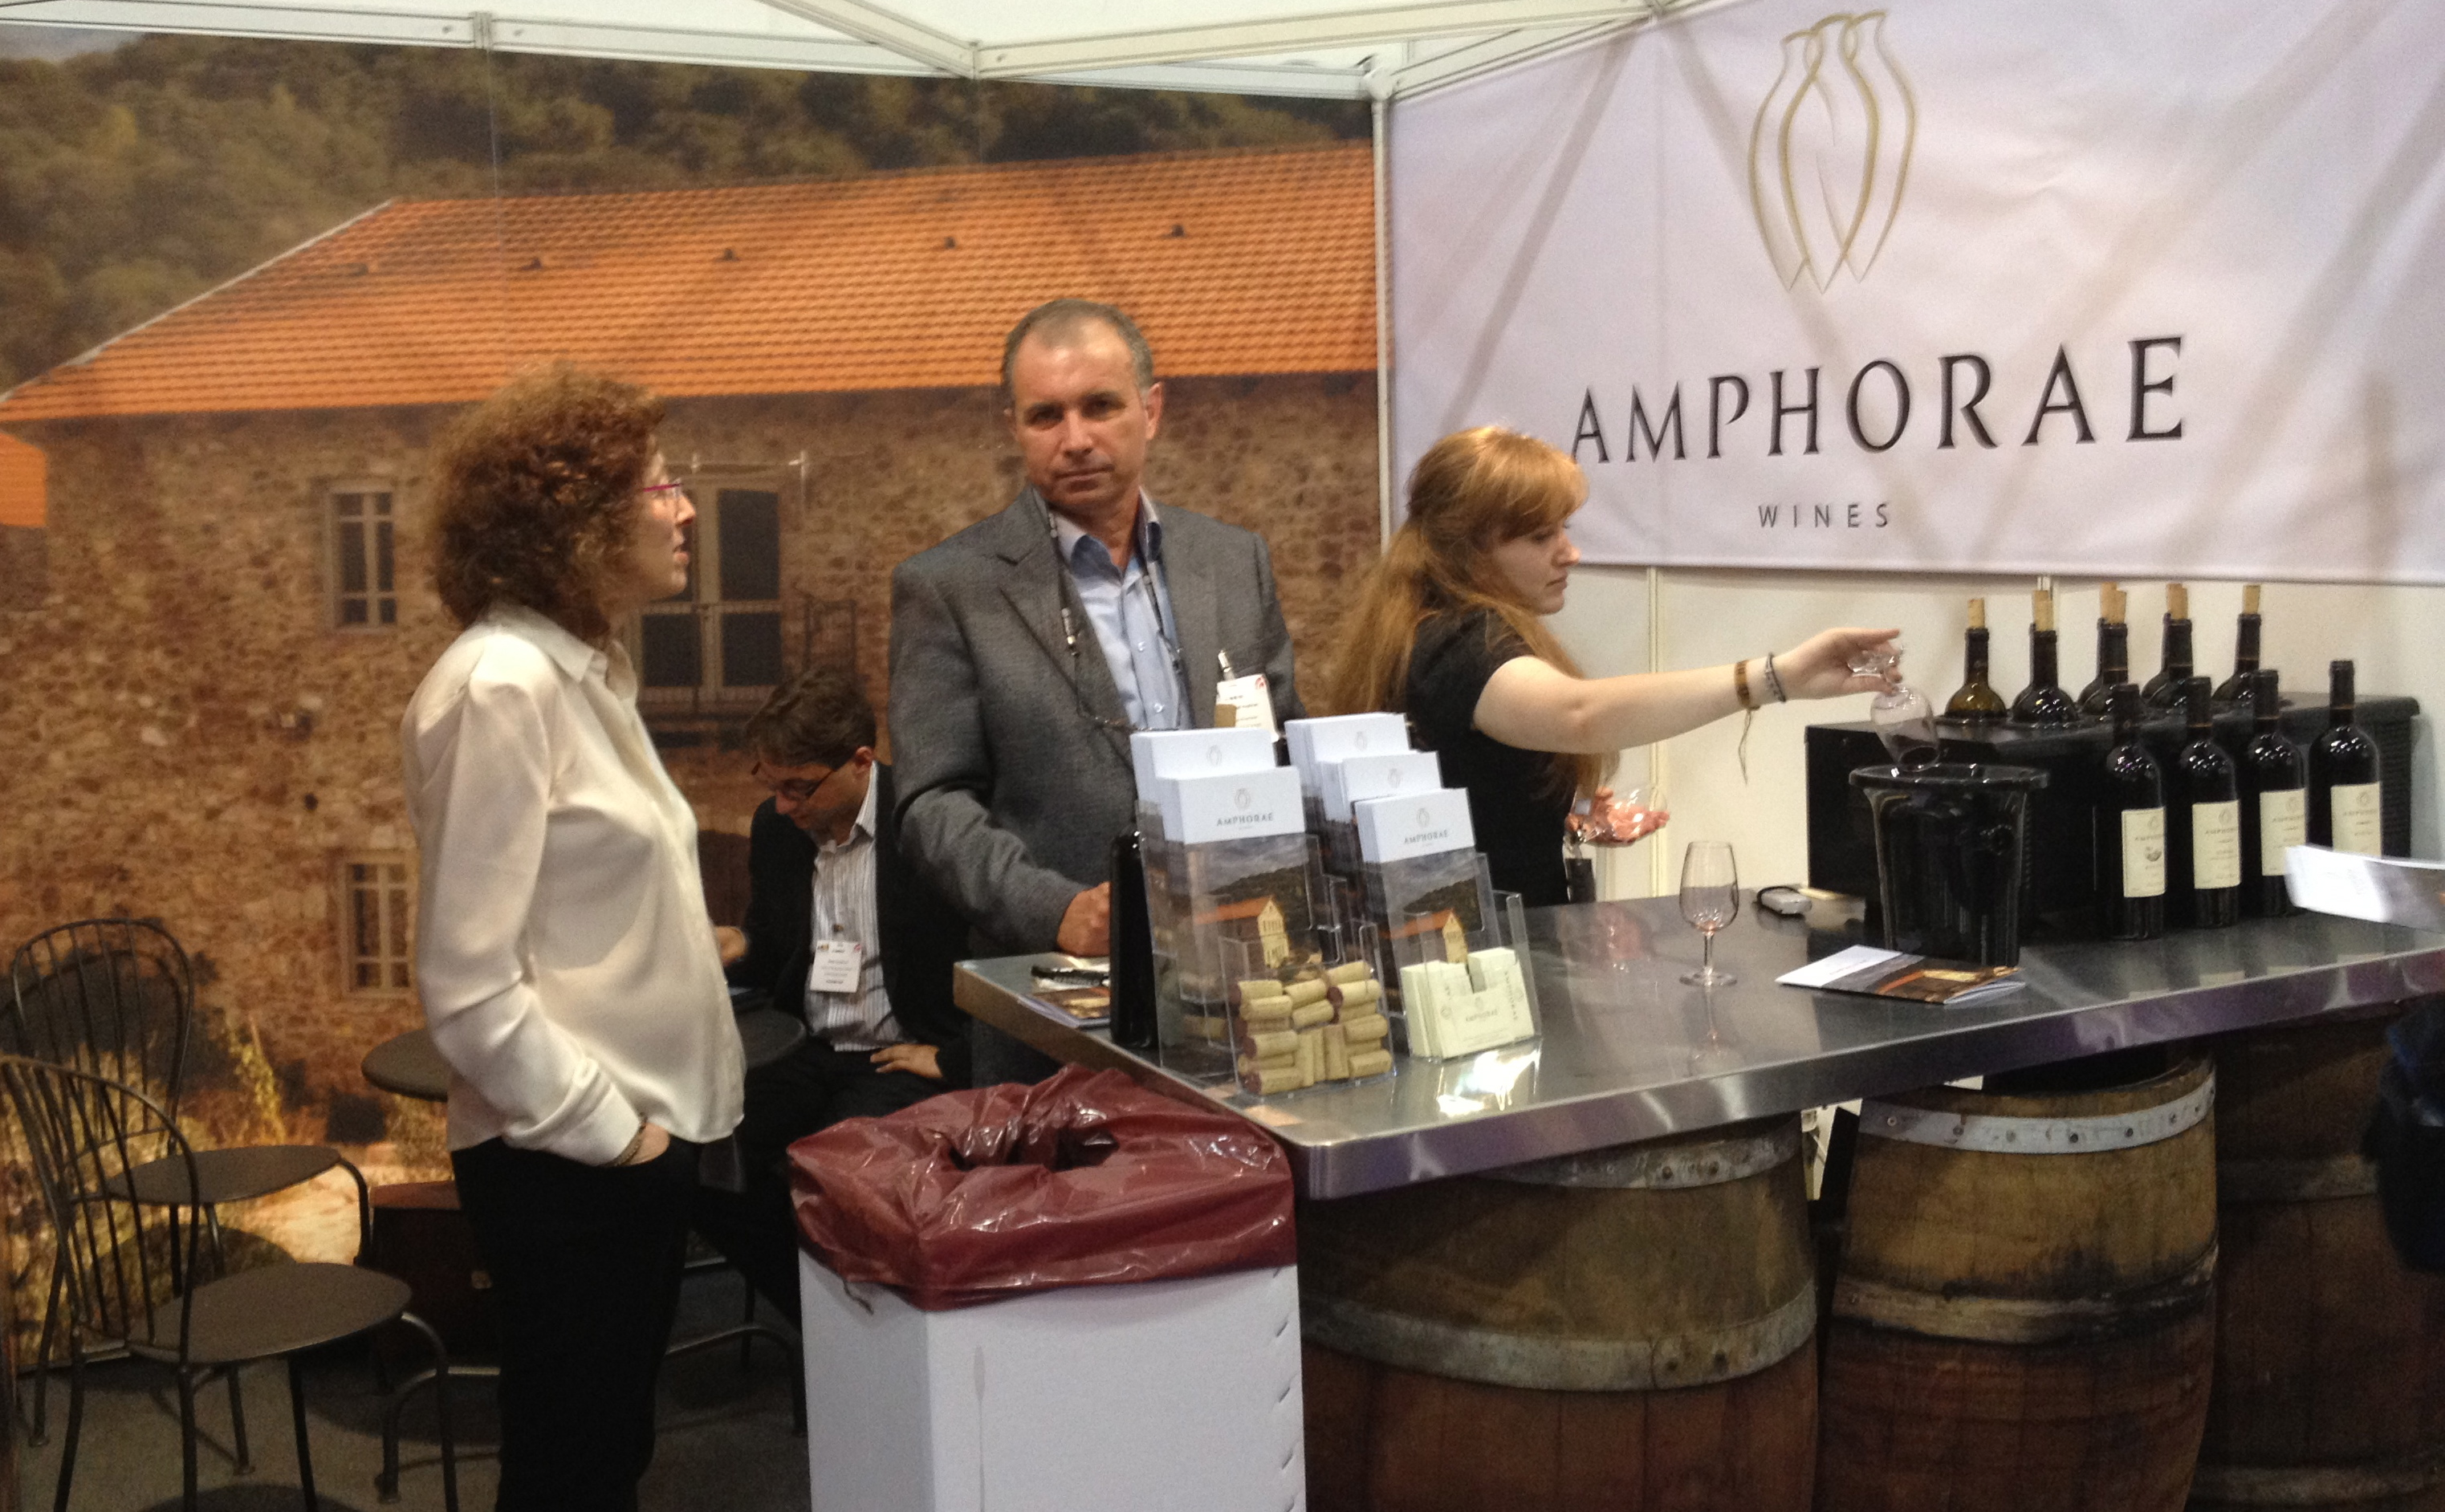 The winemaker of the Amphorae Wines